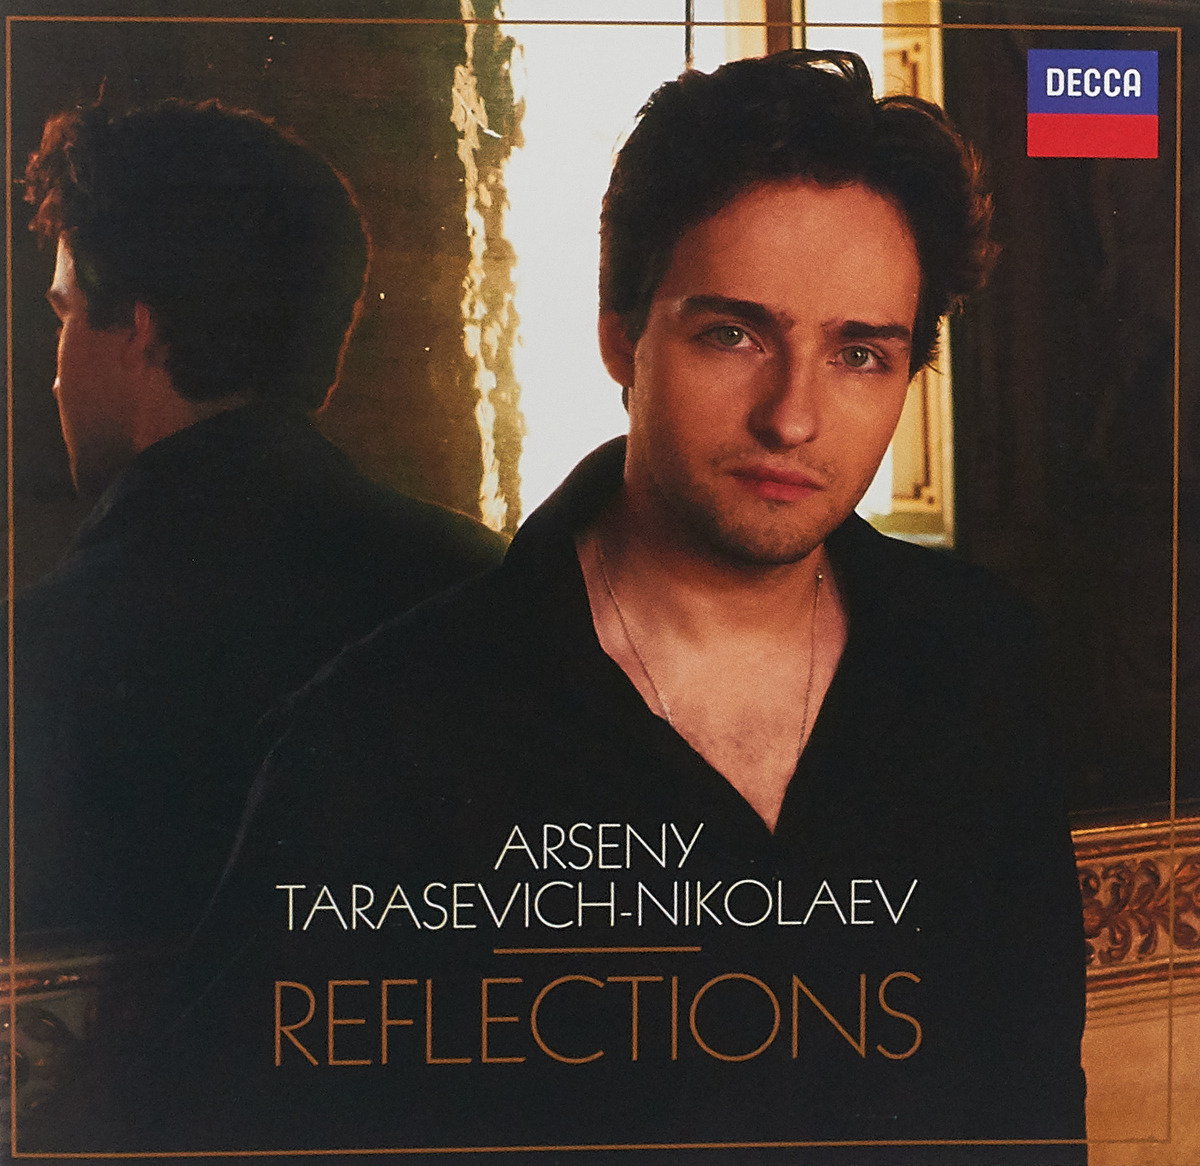 лучшая цена Arseny Tarasevich-Nikolaev Arseny Tarasevich-Nikolaev. Reflections